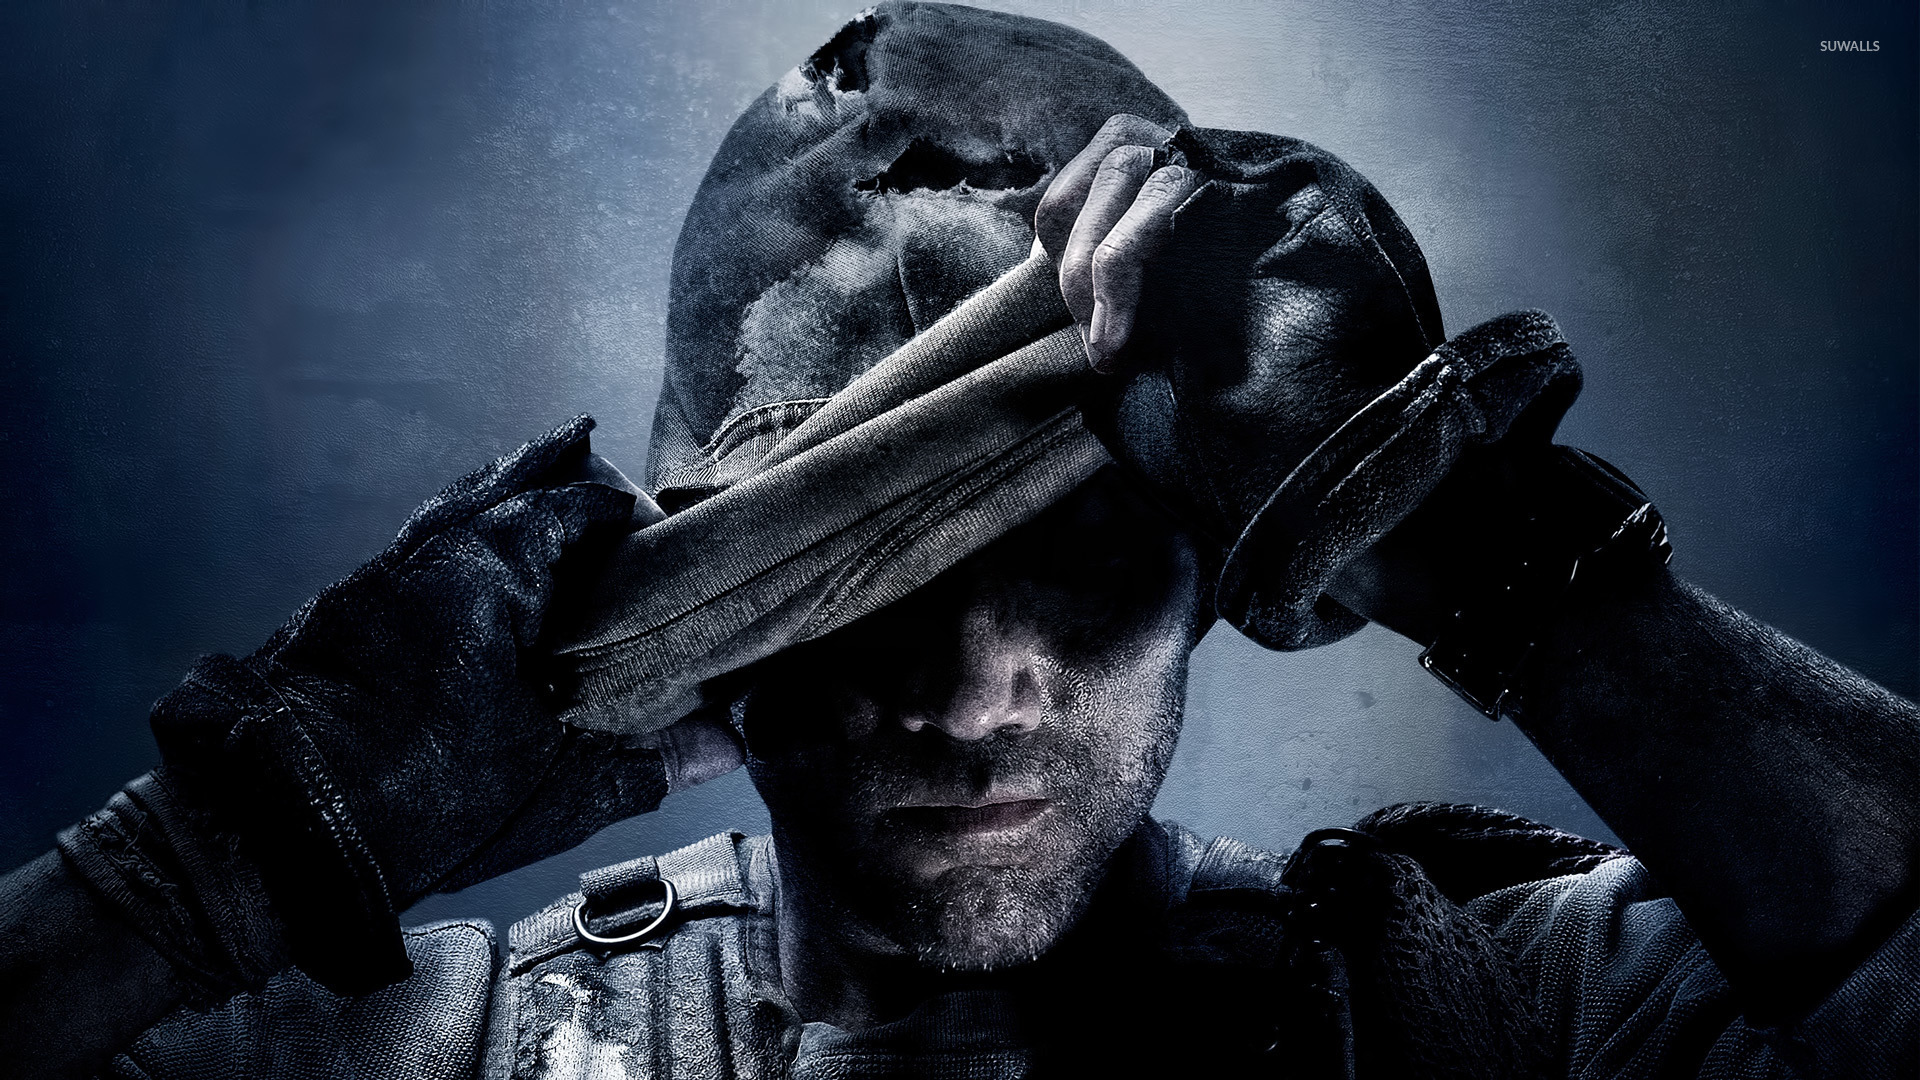 Call Of Duty Ghosts 14 Wallpaper Game Wallpapers 26562